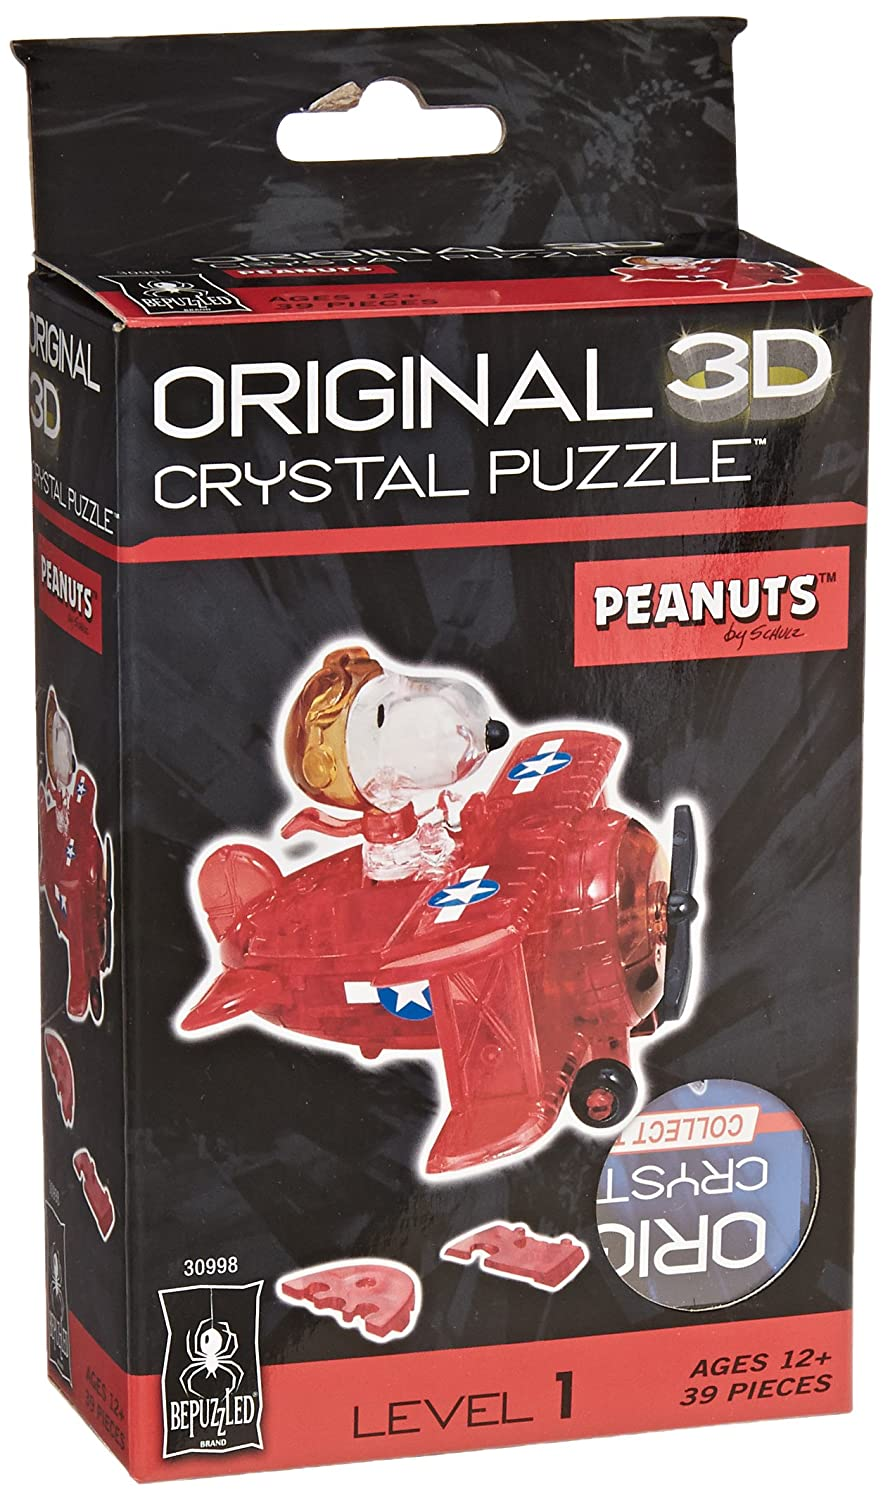 Original 3D Crystal Puzzle - Alice University Games 31033